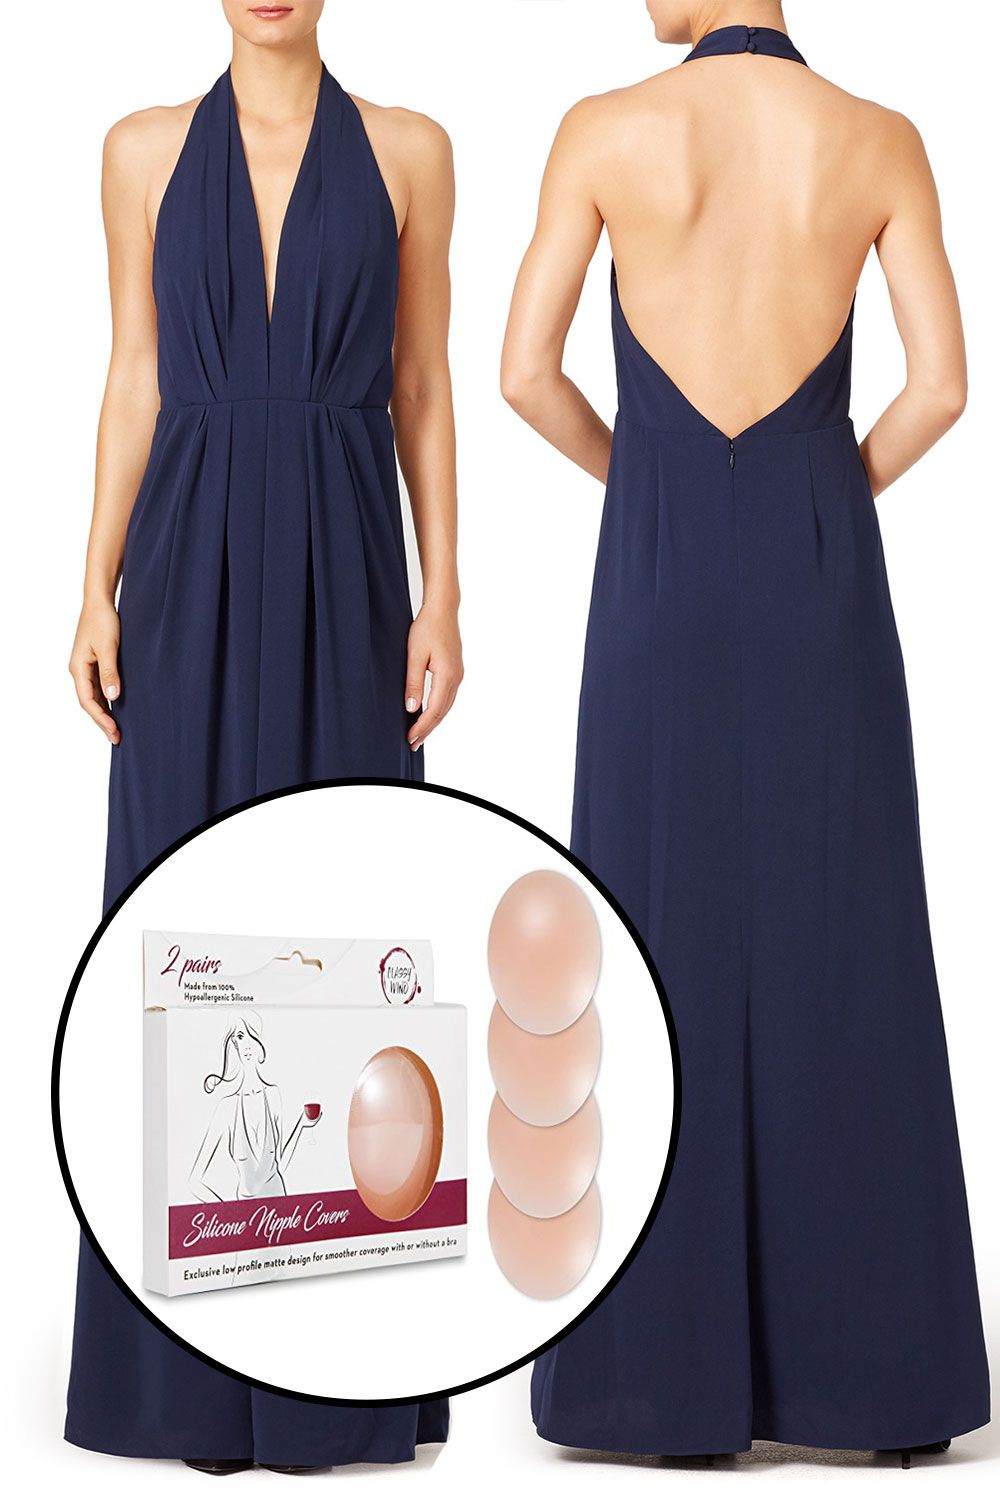 Solutions for Backless Dresses